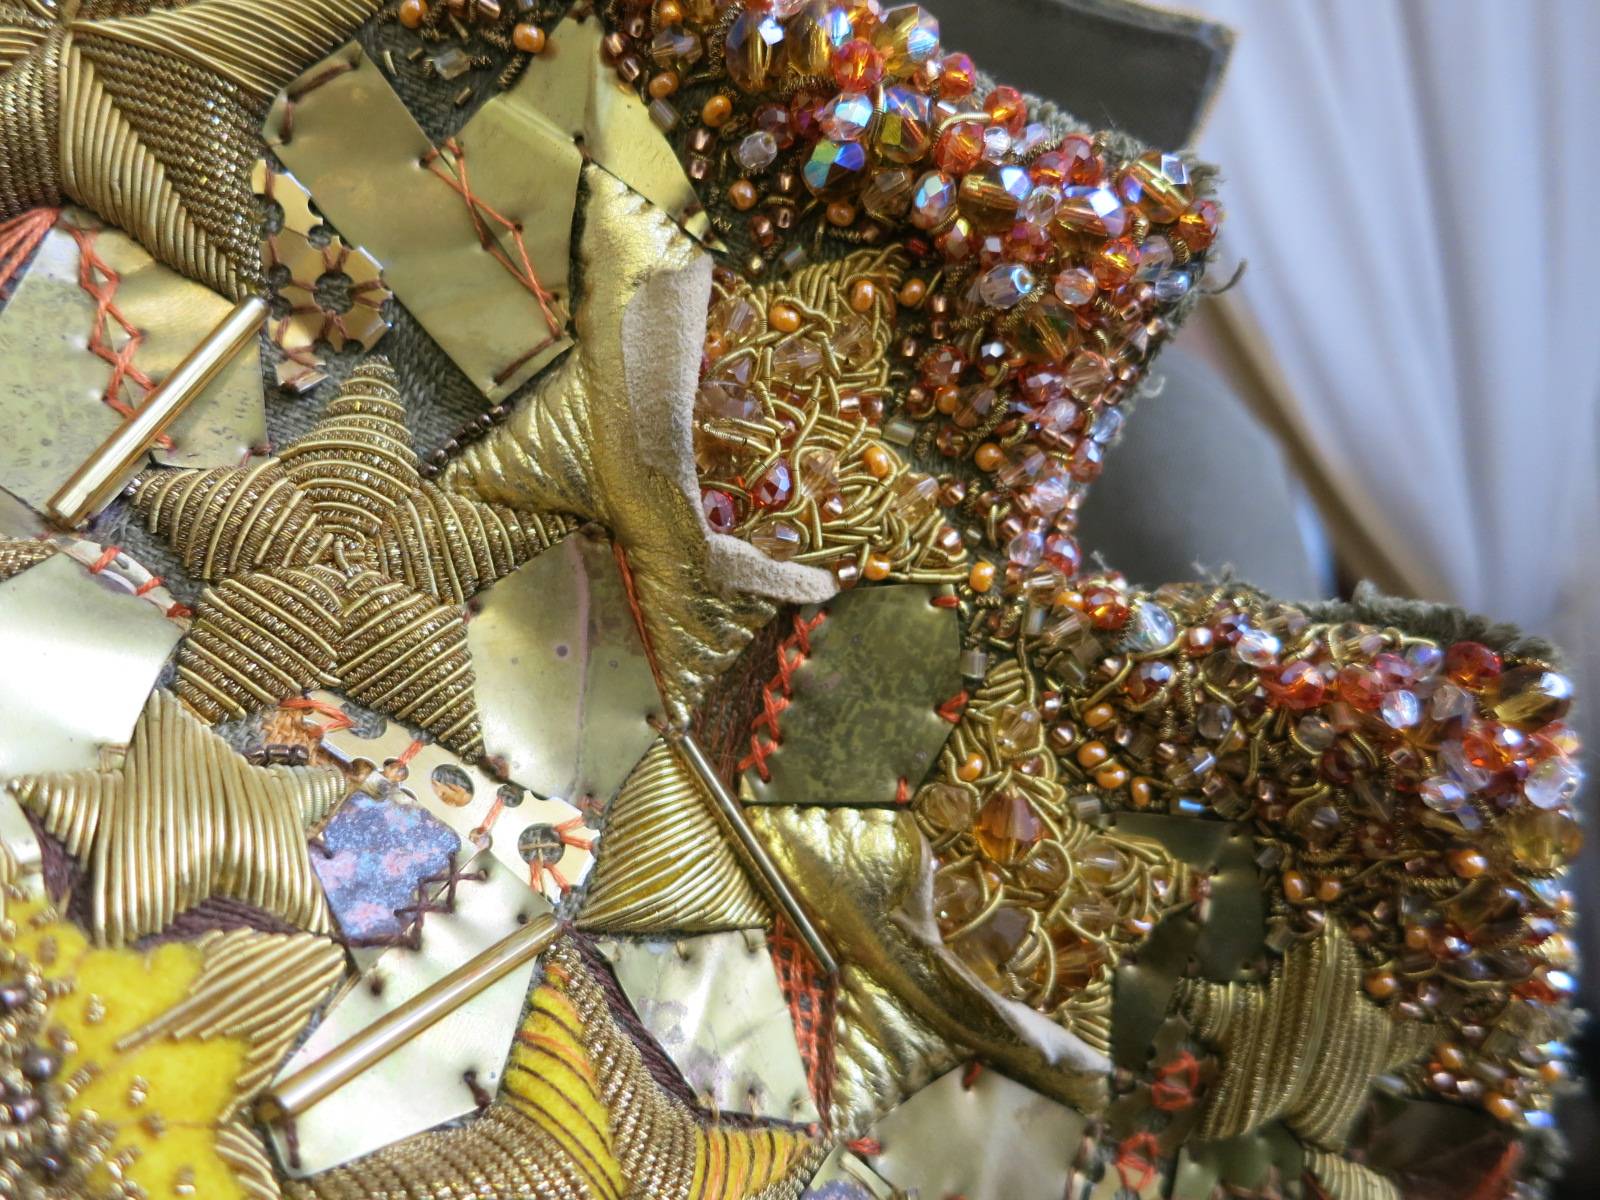 A detail of Elena Ciarrocchi's entry for the Hand & Lock Prize